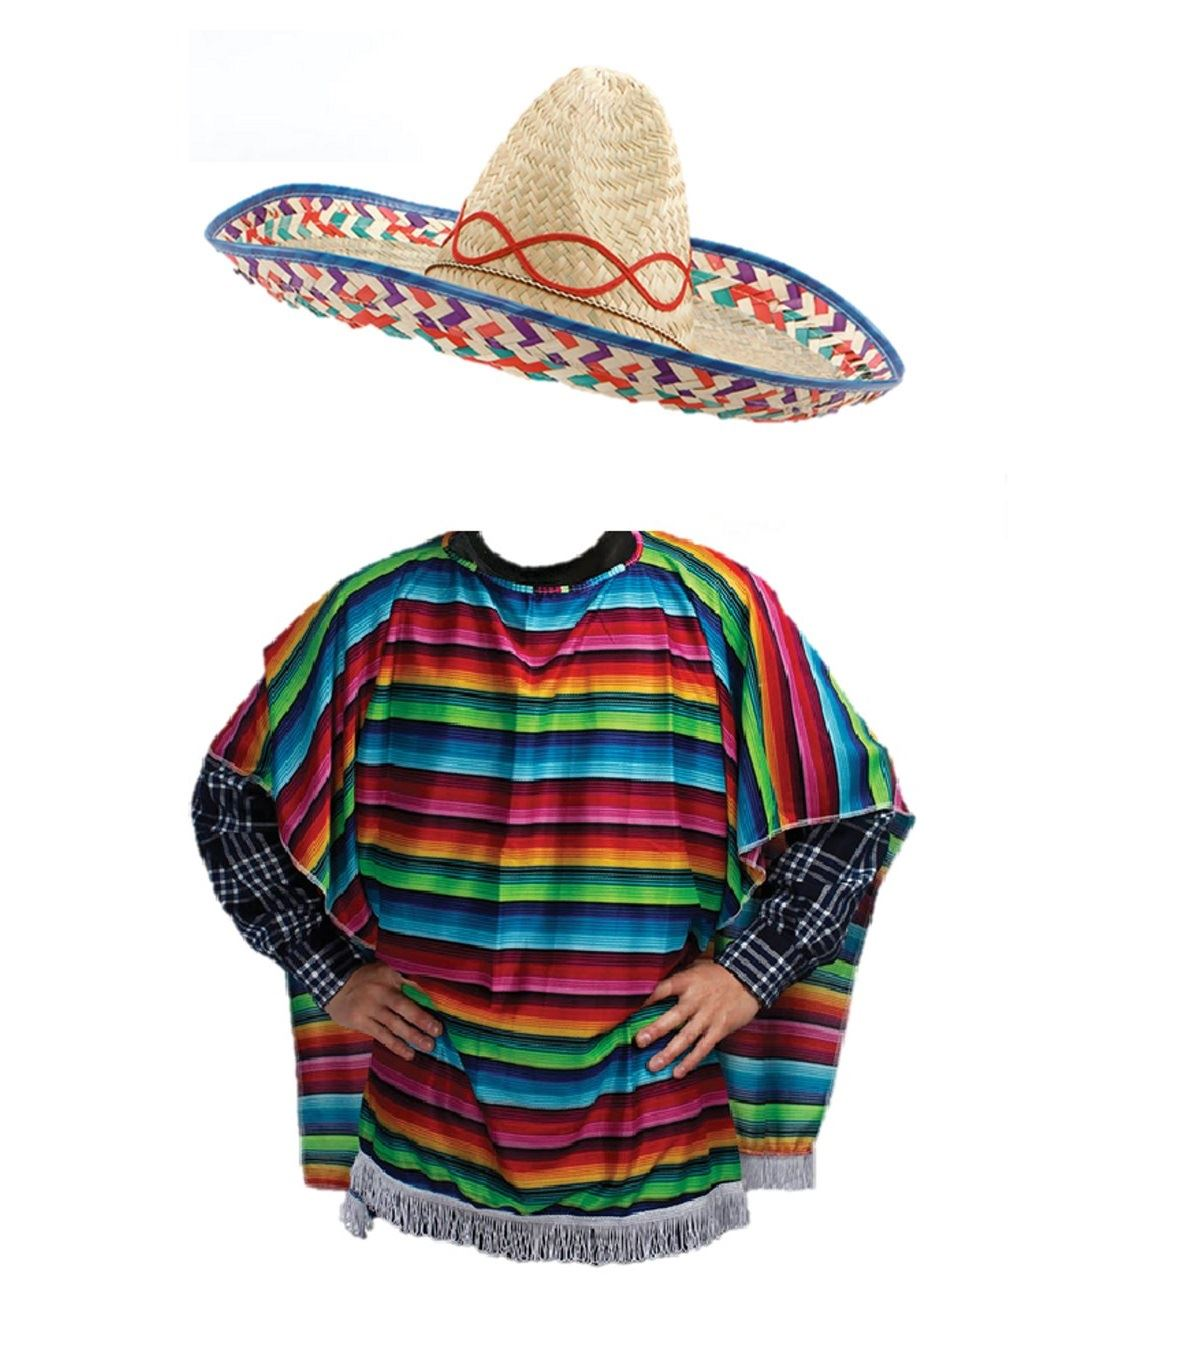 Details about Mexican Western Bandit Fancy Dress Costume Sombrero Poncho  Outfit.